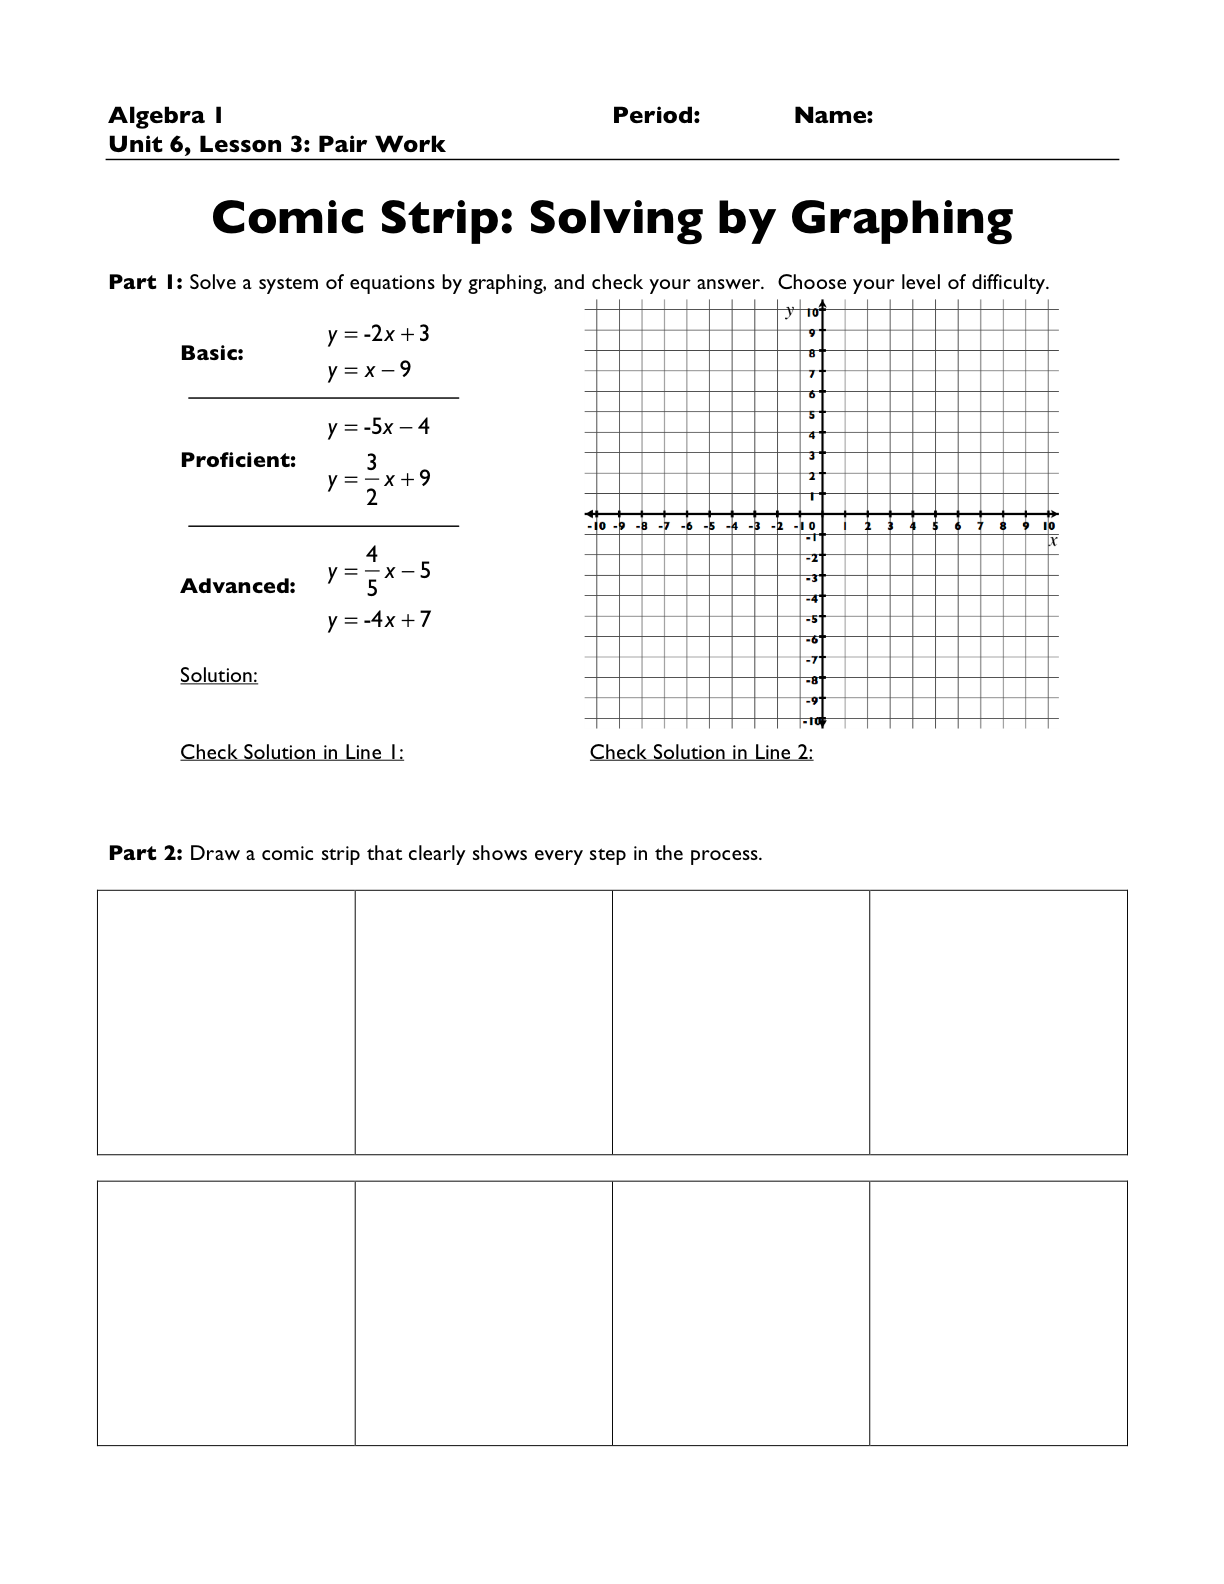 Free Worksheet Graphing Inequalities On A Number Line Worksheet resourceaholic two ways to use comic strips in maths teaching example worksheet